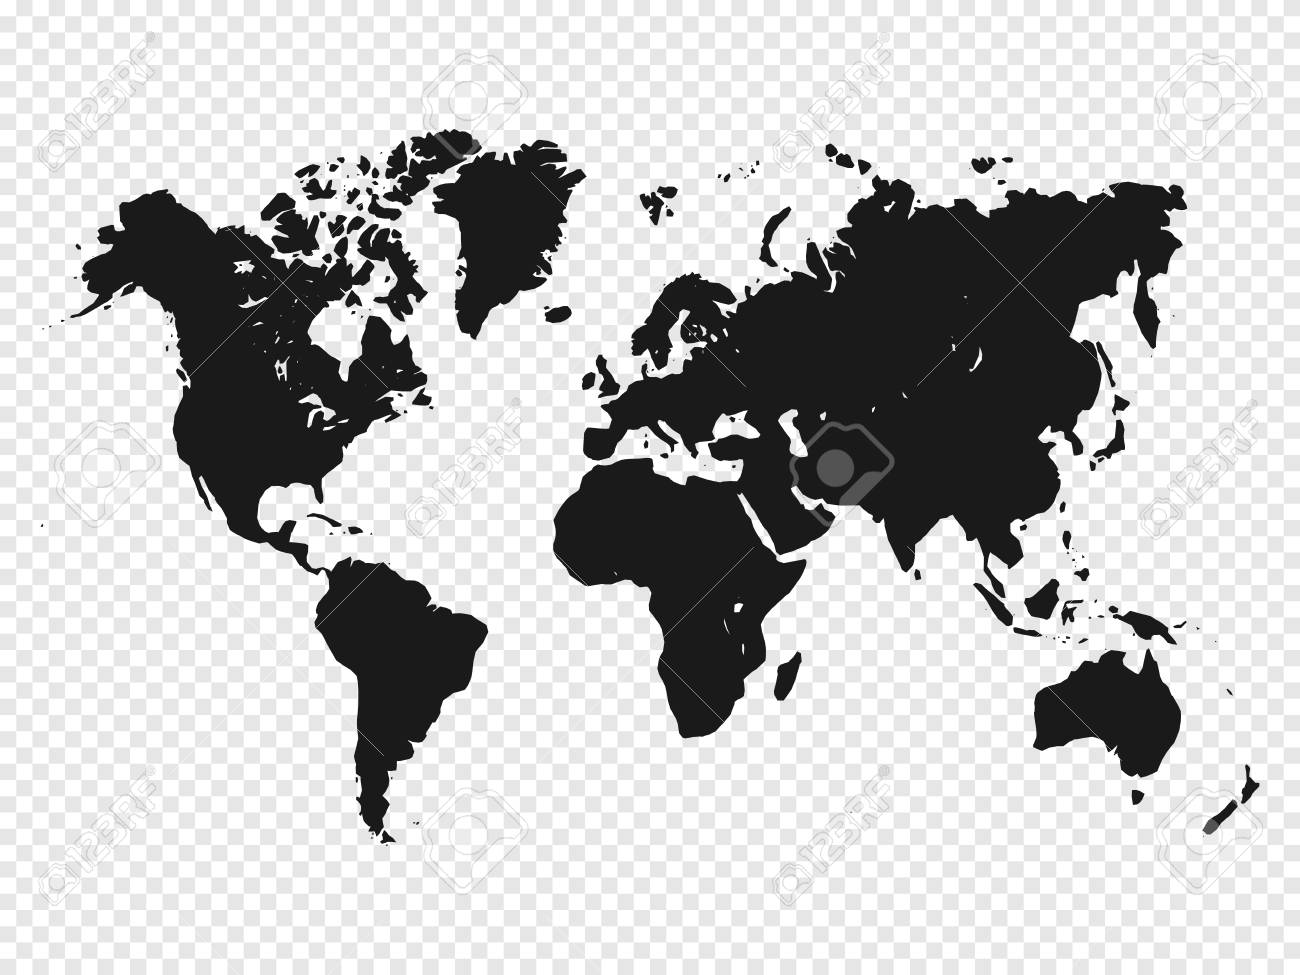 Black world map silhouette on transparent background vector black world map silhouette on transparent background vector illustration stock vector 75765170 gumiabroncs Images